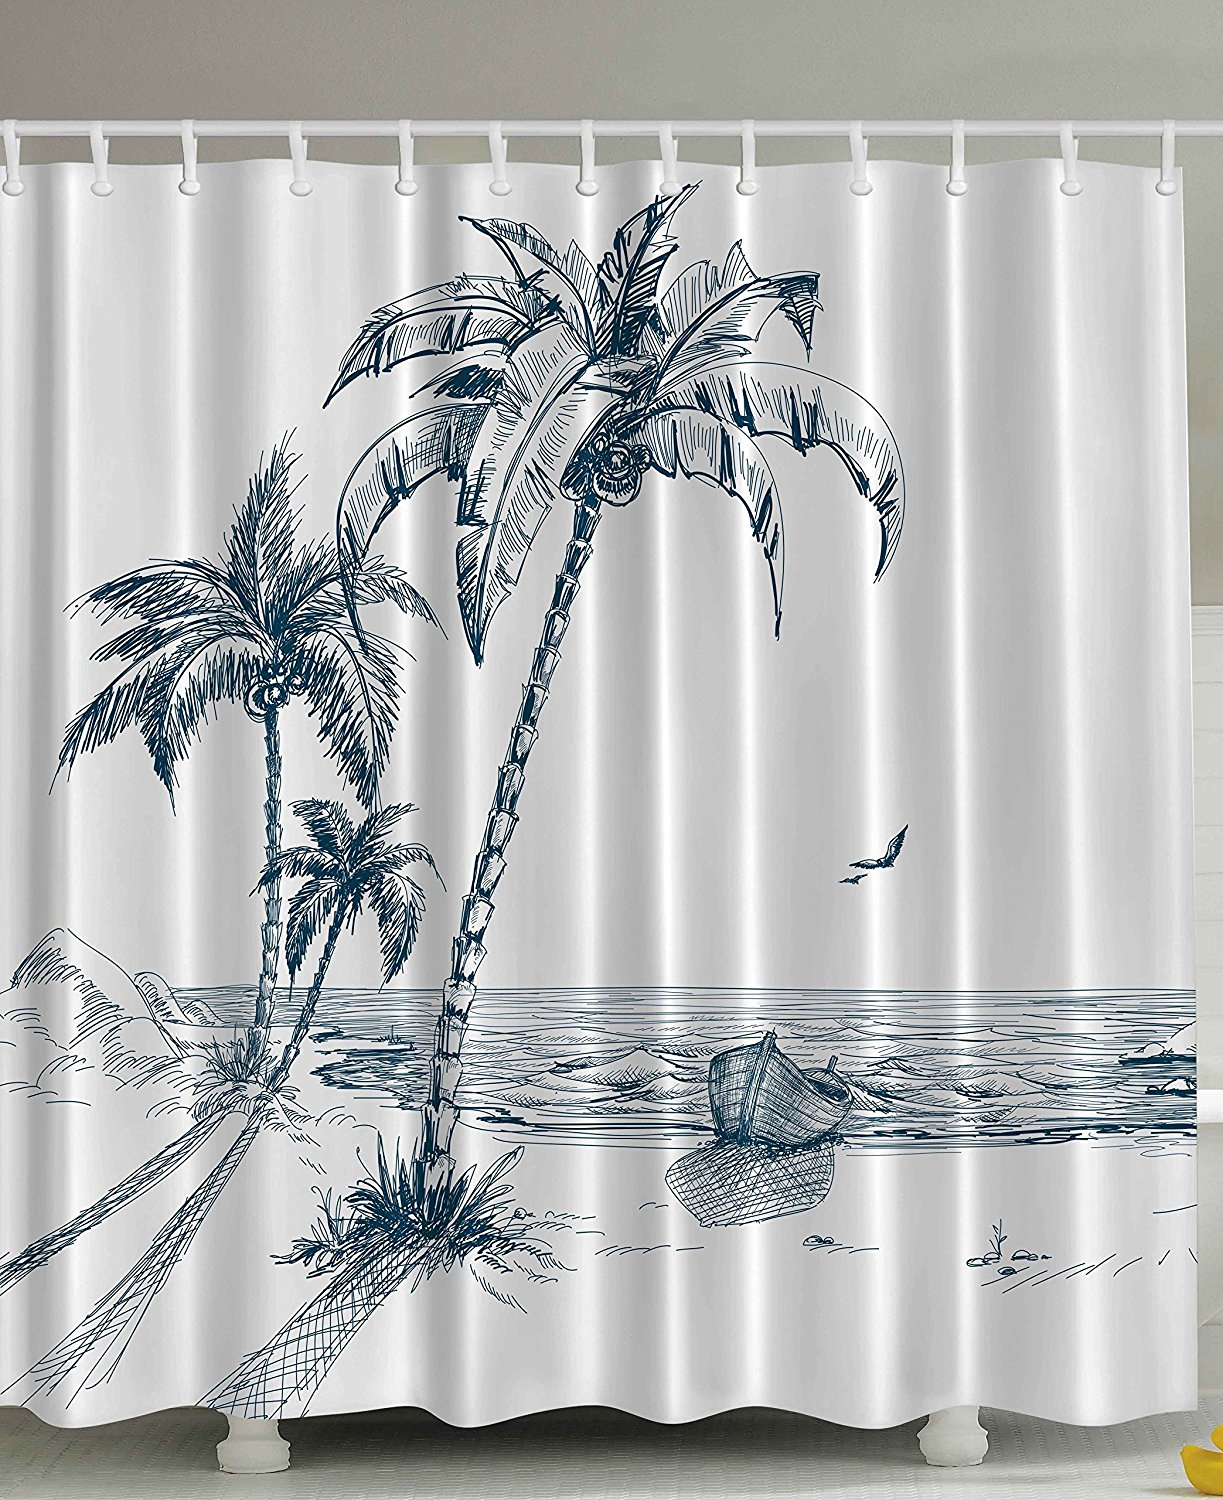 Peva shower curtain nautical design - Memory Home Nautical Shower Curtain Palms Beach Tropical Decor Shadow Wooden Boat Ocean Waves Rocks Desert